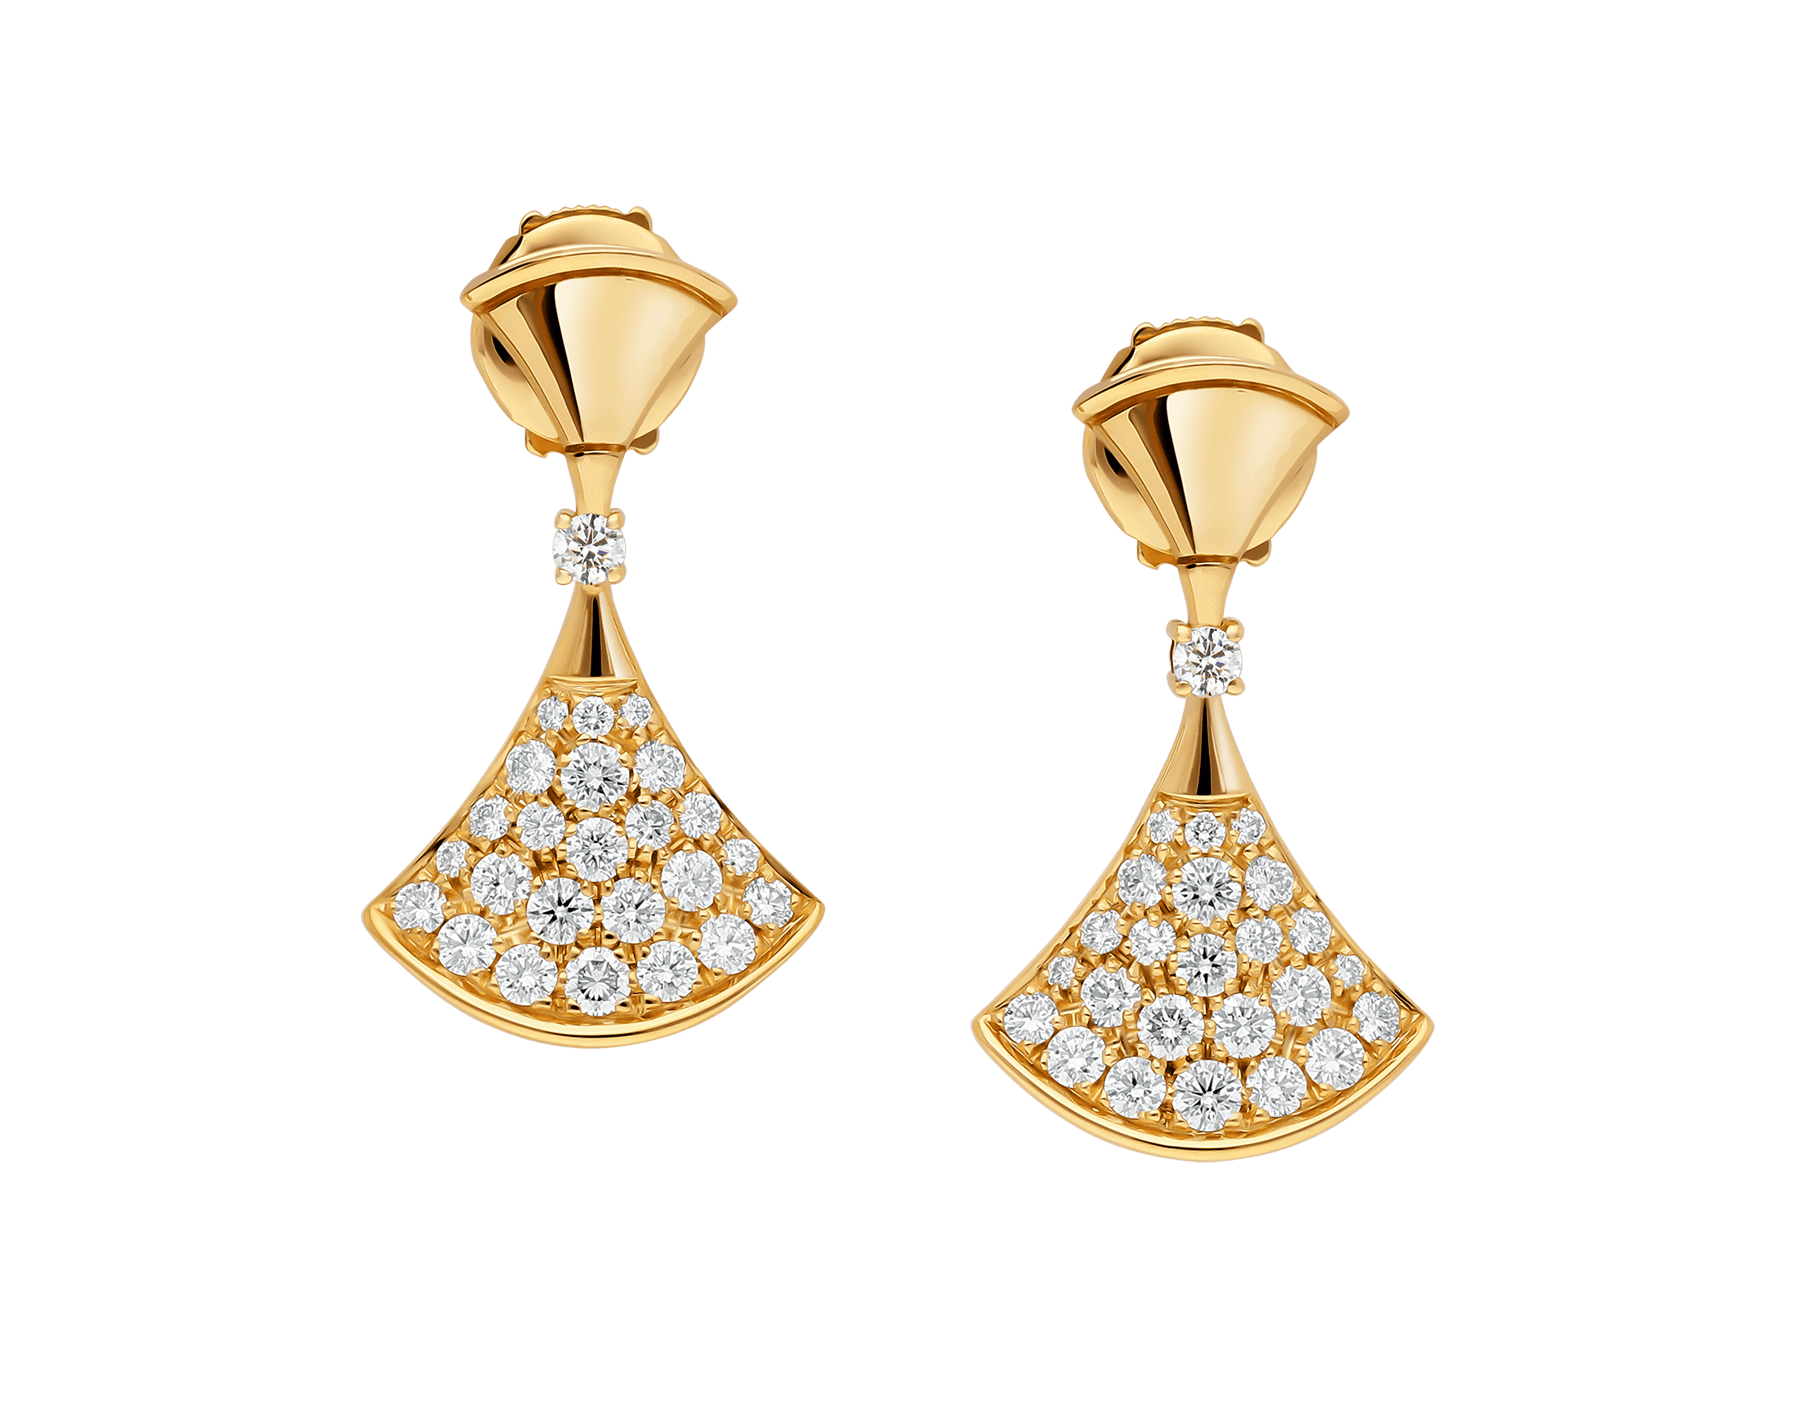 DIVAS' DREAM 18 kt yellow gold earrings set with a diamond and pavé diamonds 357514 image 1